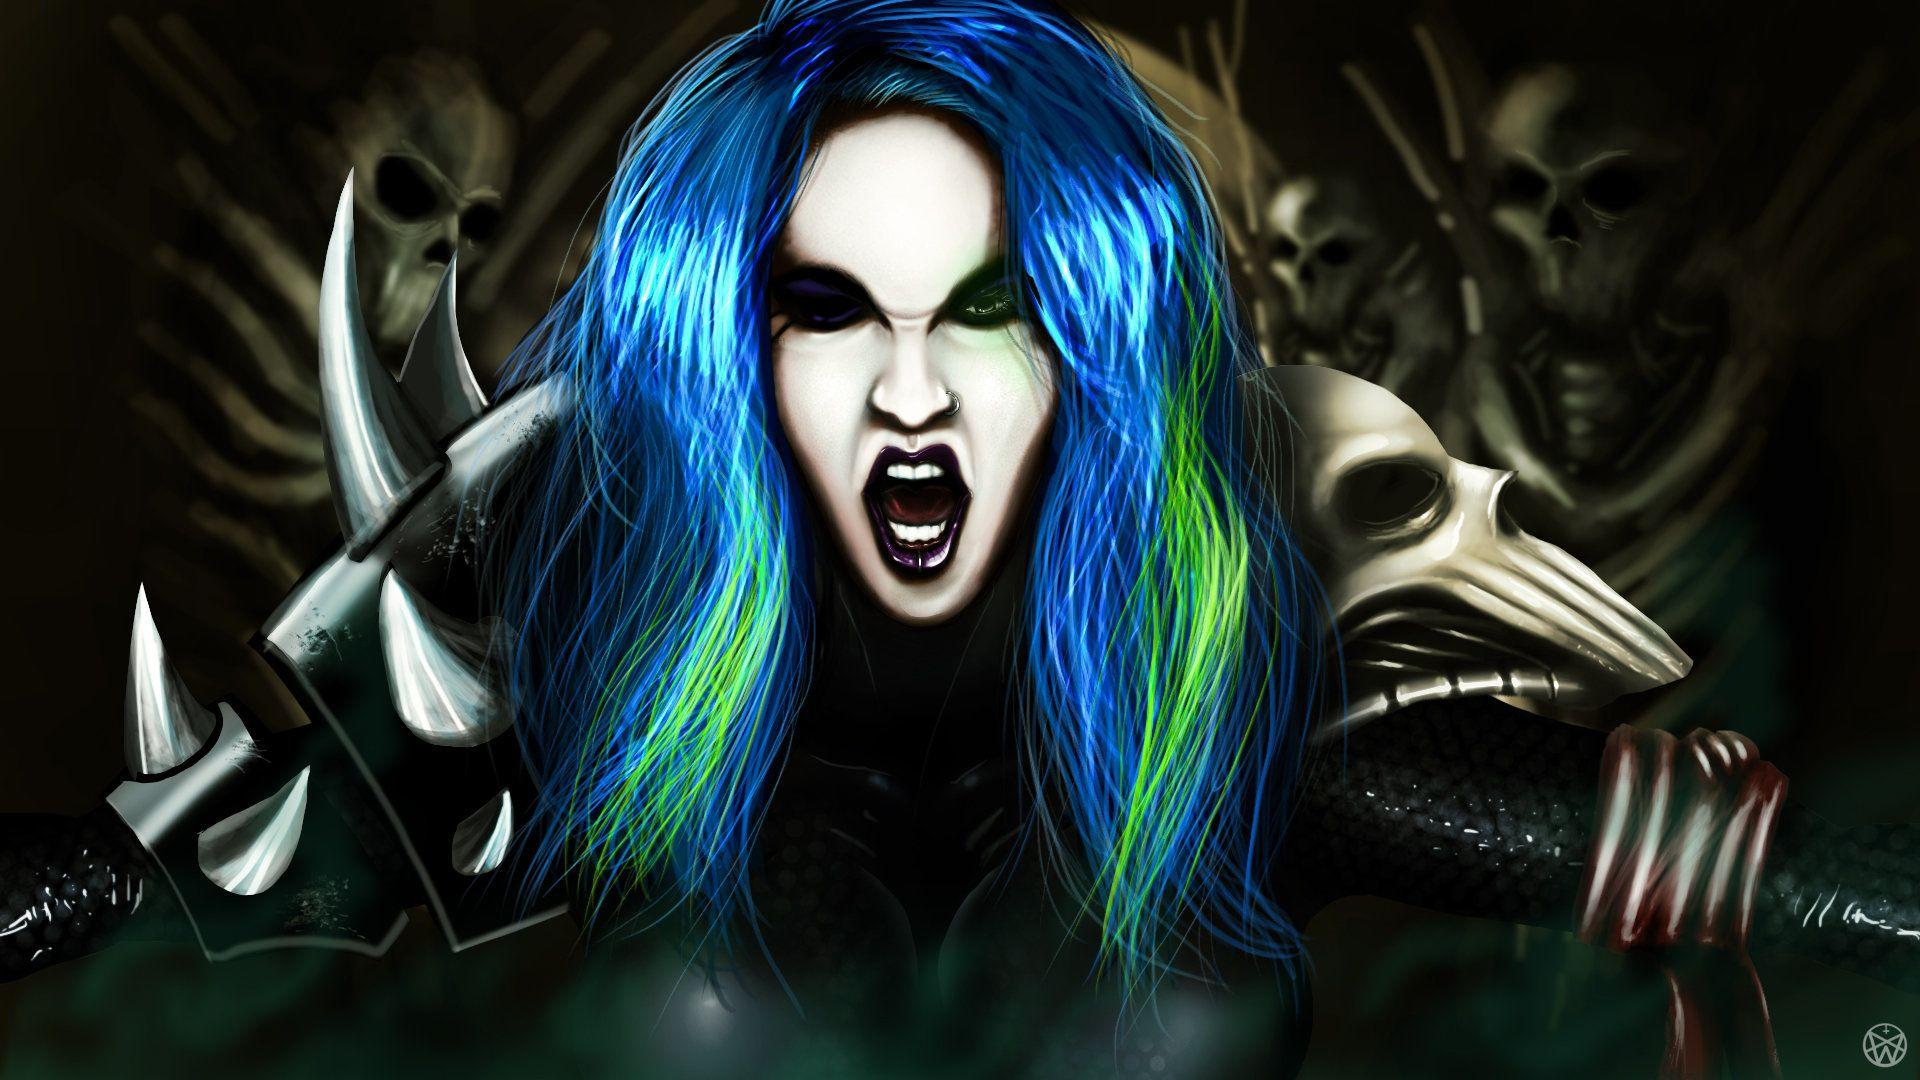 Alissa White Gluz On Twitter Congratulations To: Alissa White-Gluz Wallpapers